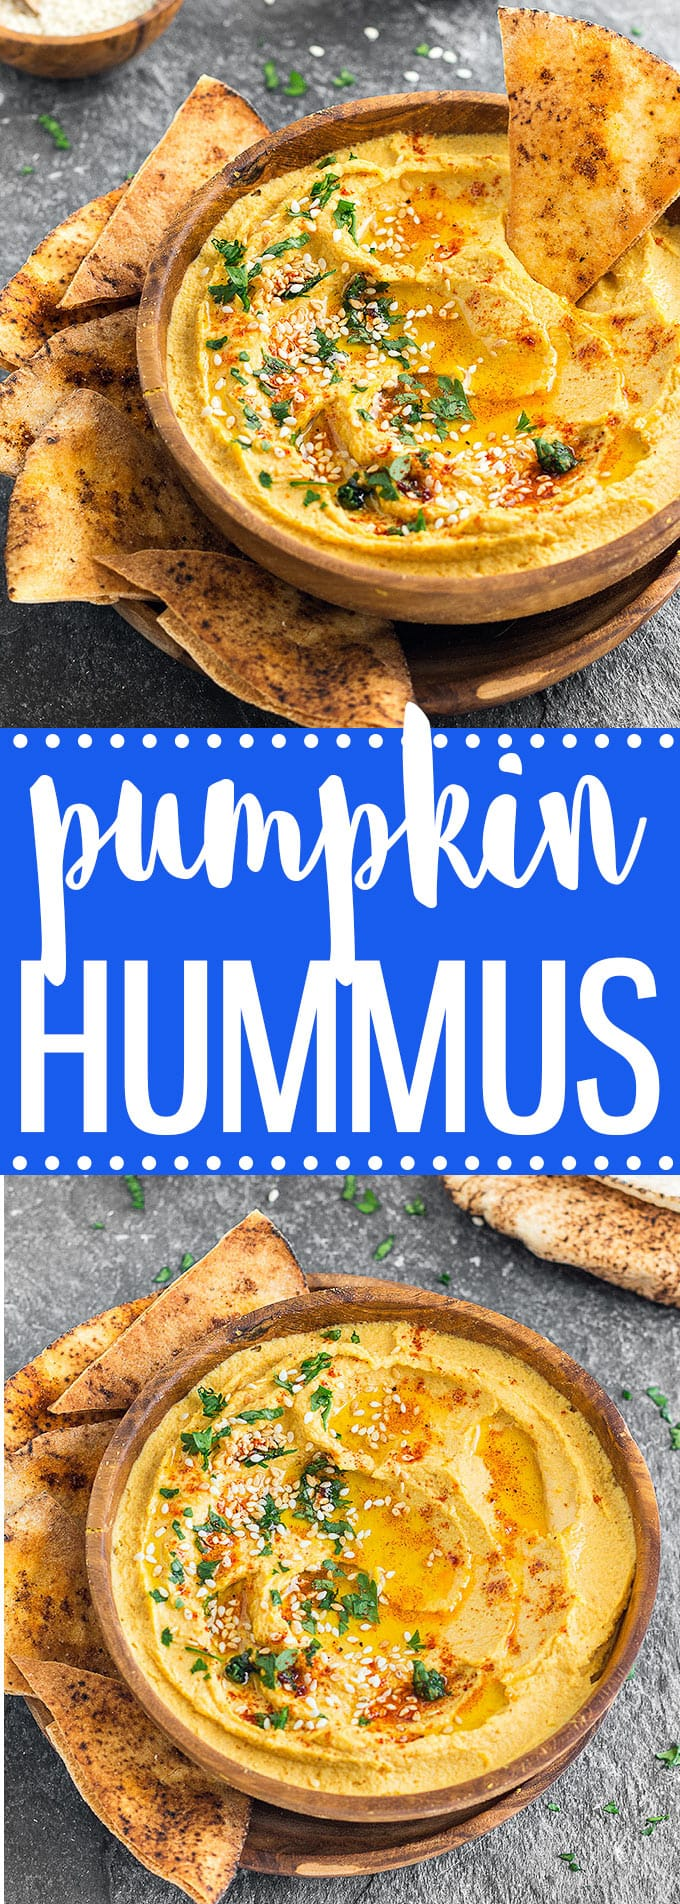 If you have pumpkin puree on hand, whip up a batch of this savory pumpkin hummus. Pair this dip with pita bread, crackers or veggie sticks and you have a delicious snack or appetizer ready in 5 minutes. #pumpkin #hummus #healthyrecipes #appetizer #snack #dip #fall #autumn #easyrecipes